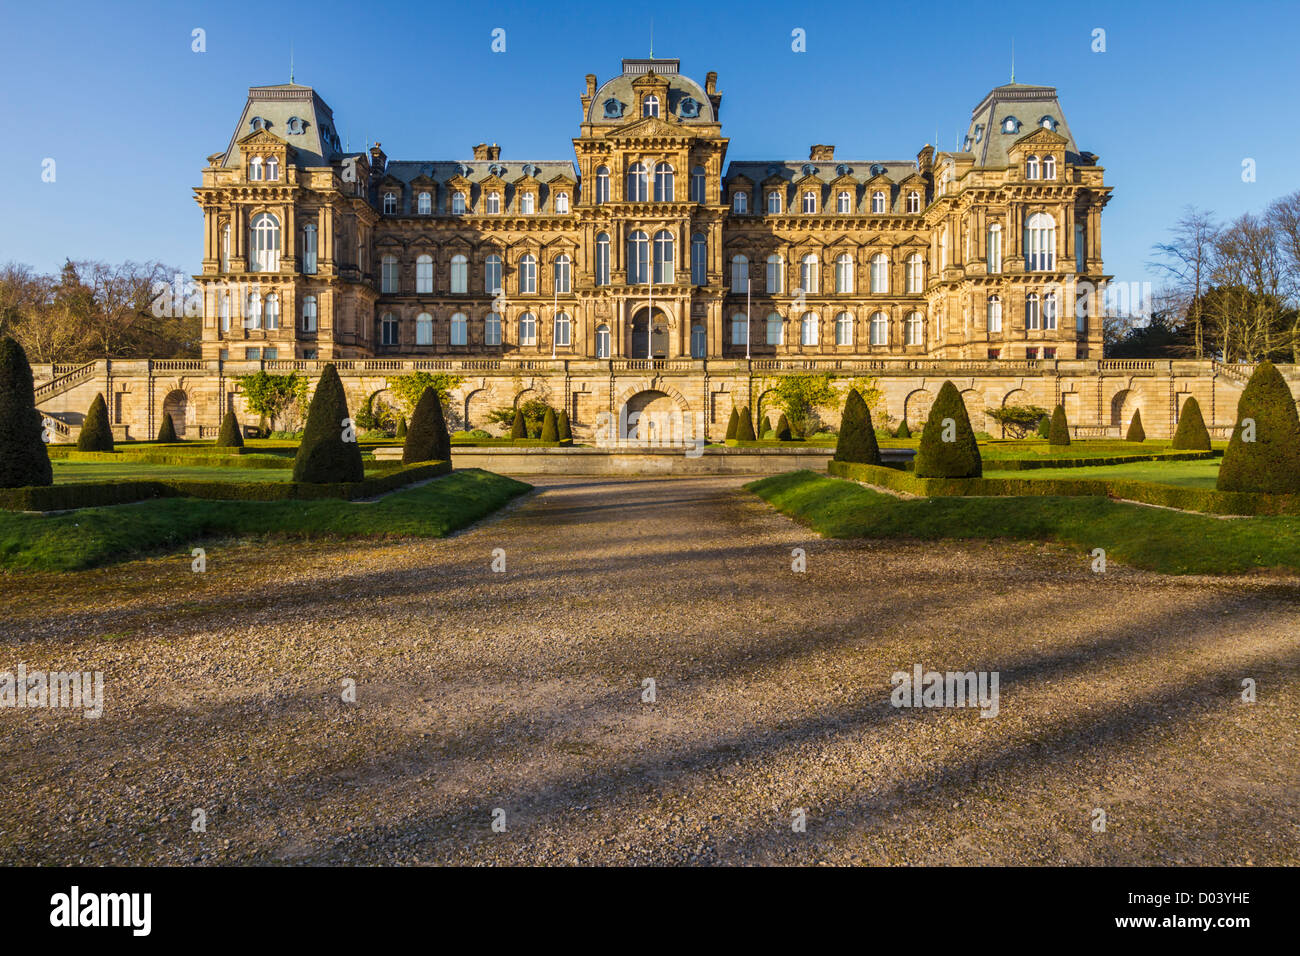 Bowes Museum in Barnard Castle, County Durham. The museum was built by John and Joséphine Bowes in the 19th - Stock Image